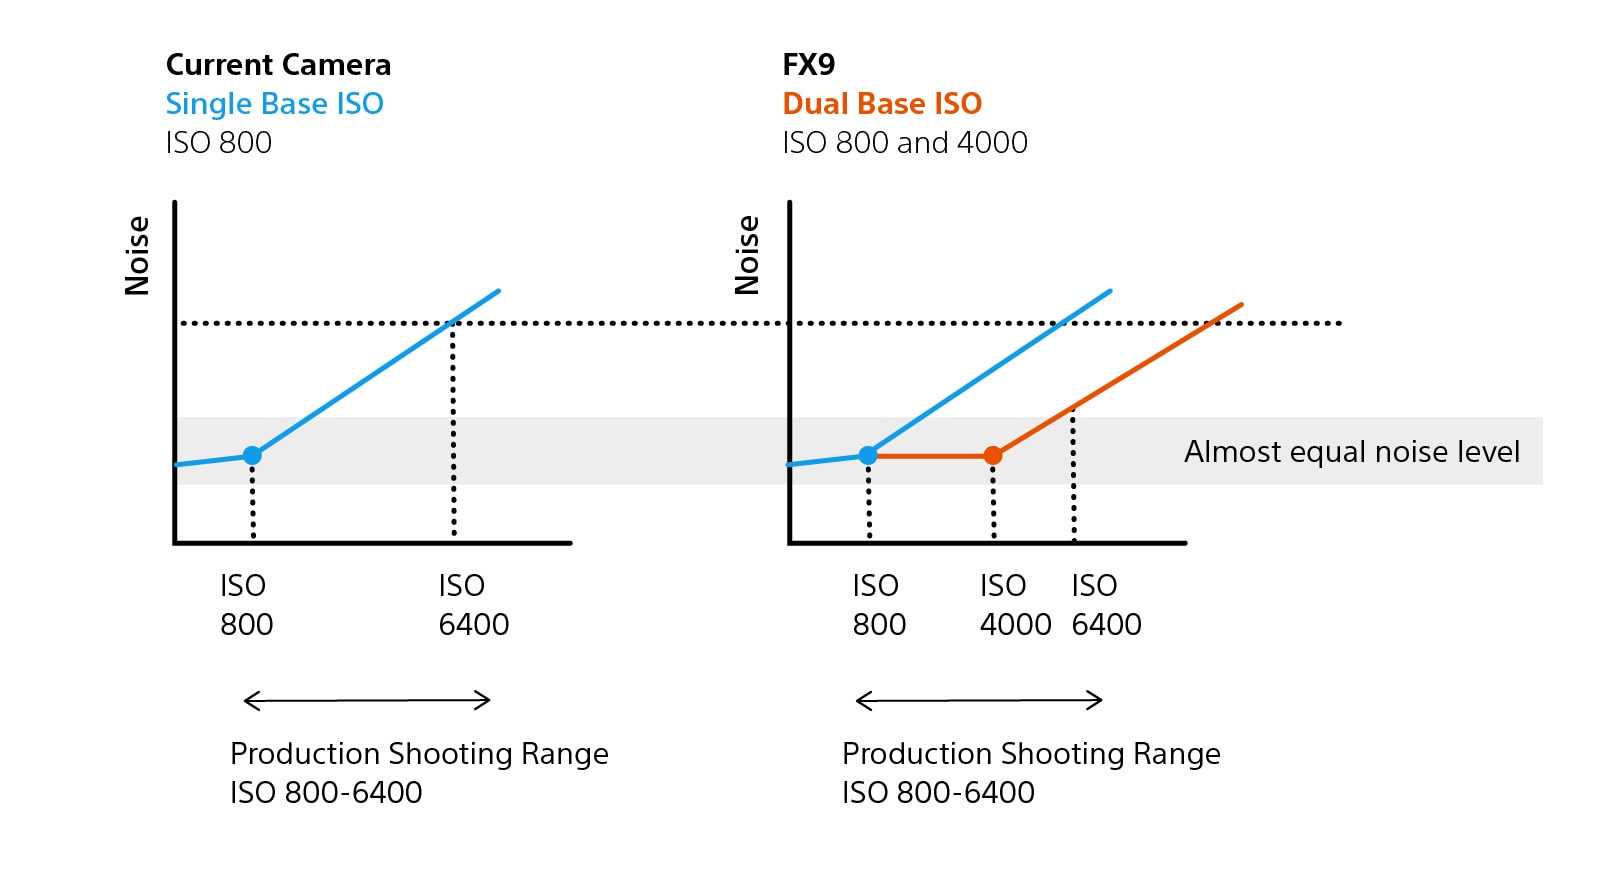 Diagrams showing Single Base ISO and Dual Base ISO in operation with Production Shooting Range.